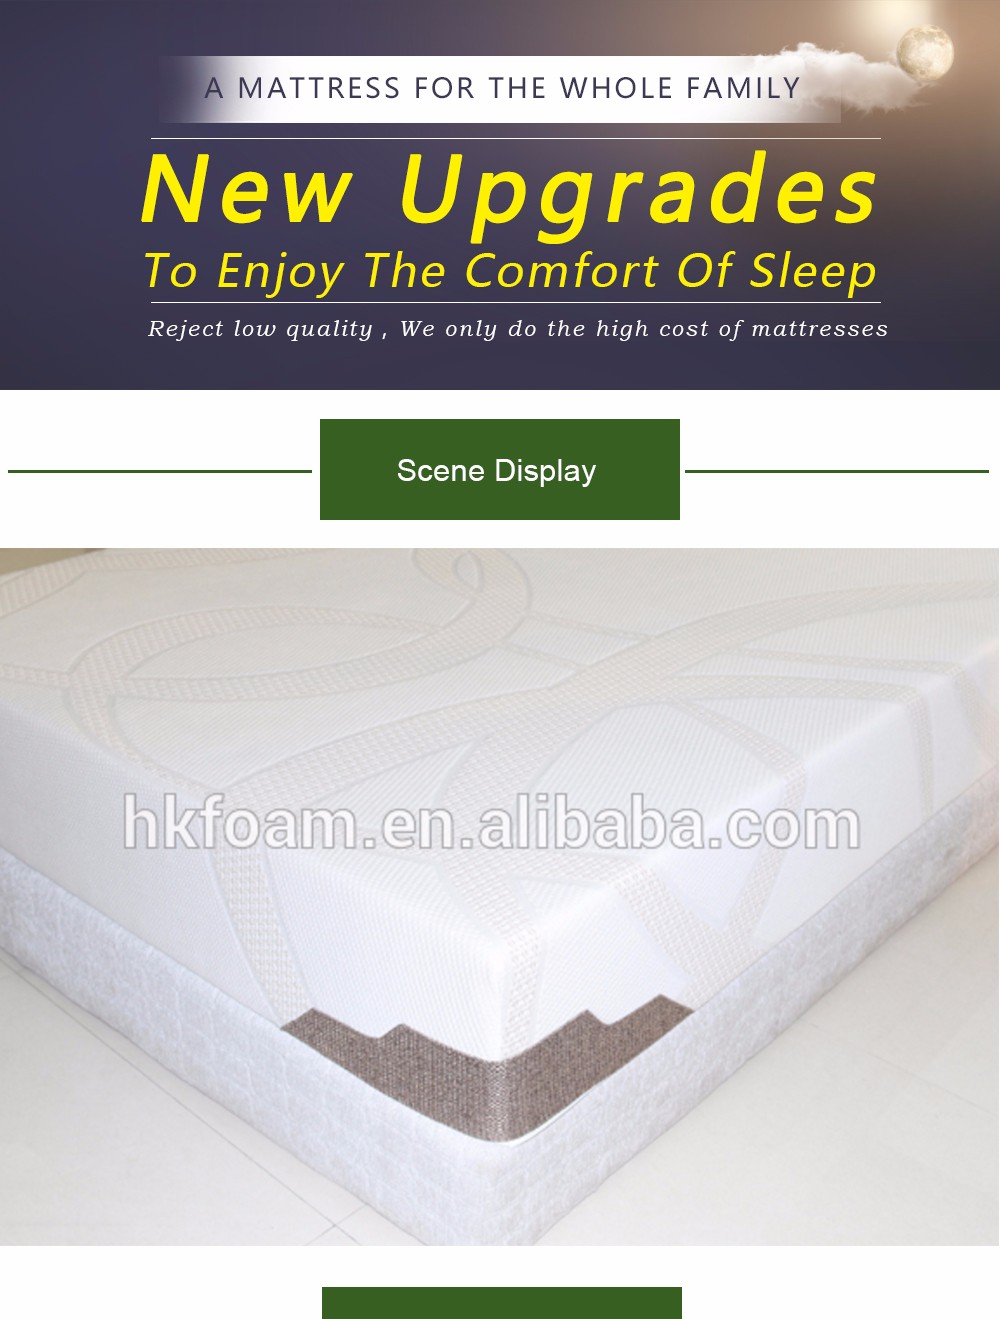 Travel Memory Foam Mattress For Sale Buy Memory Foam Mattress Travel Mattress Travel Memory